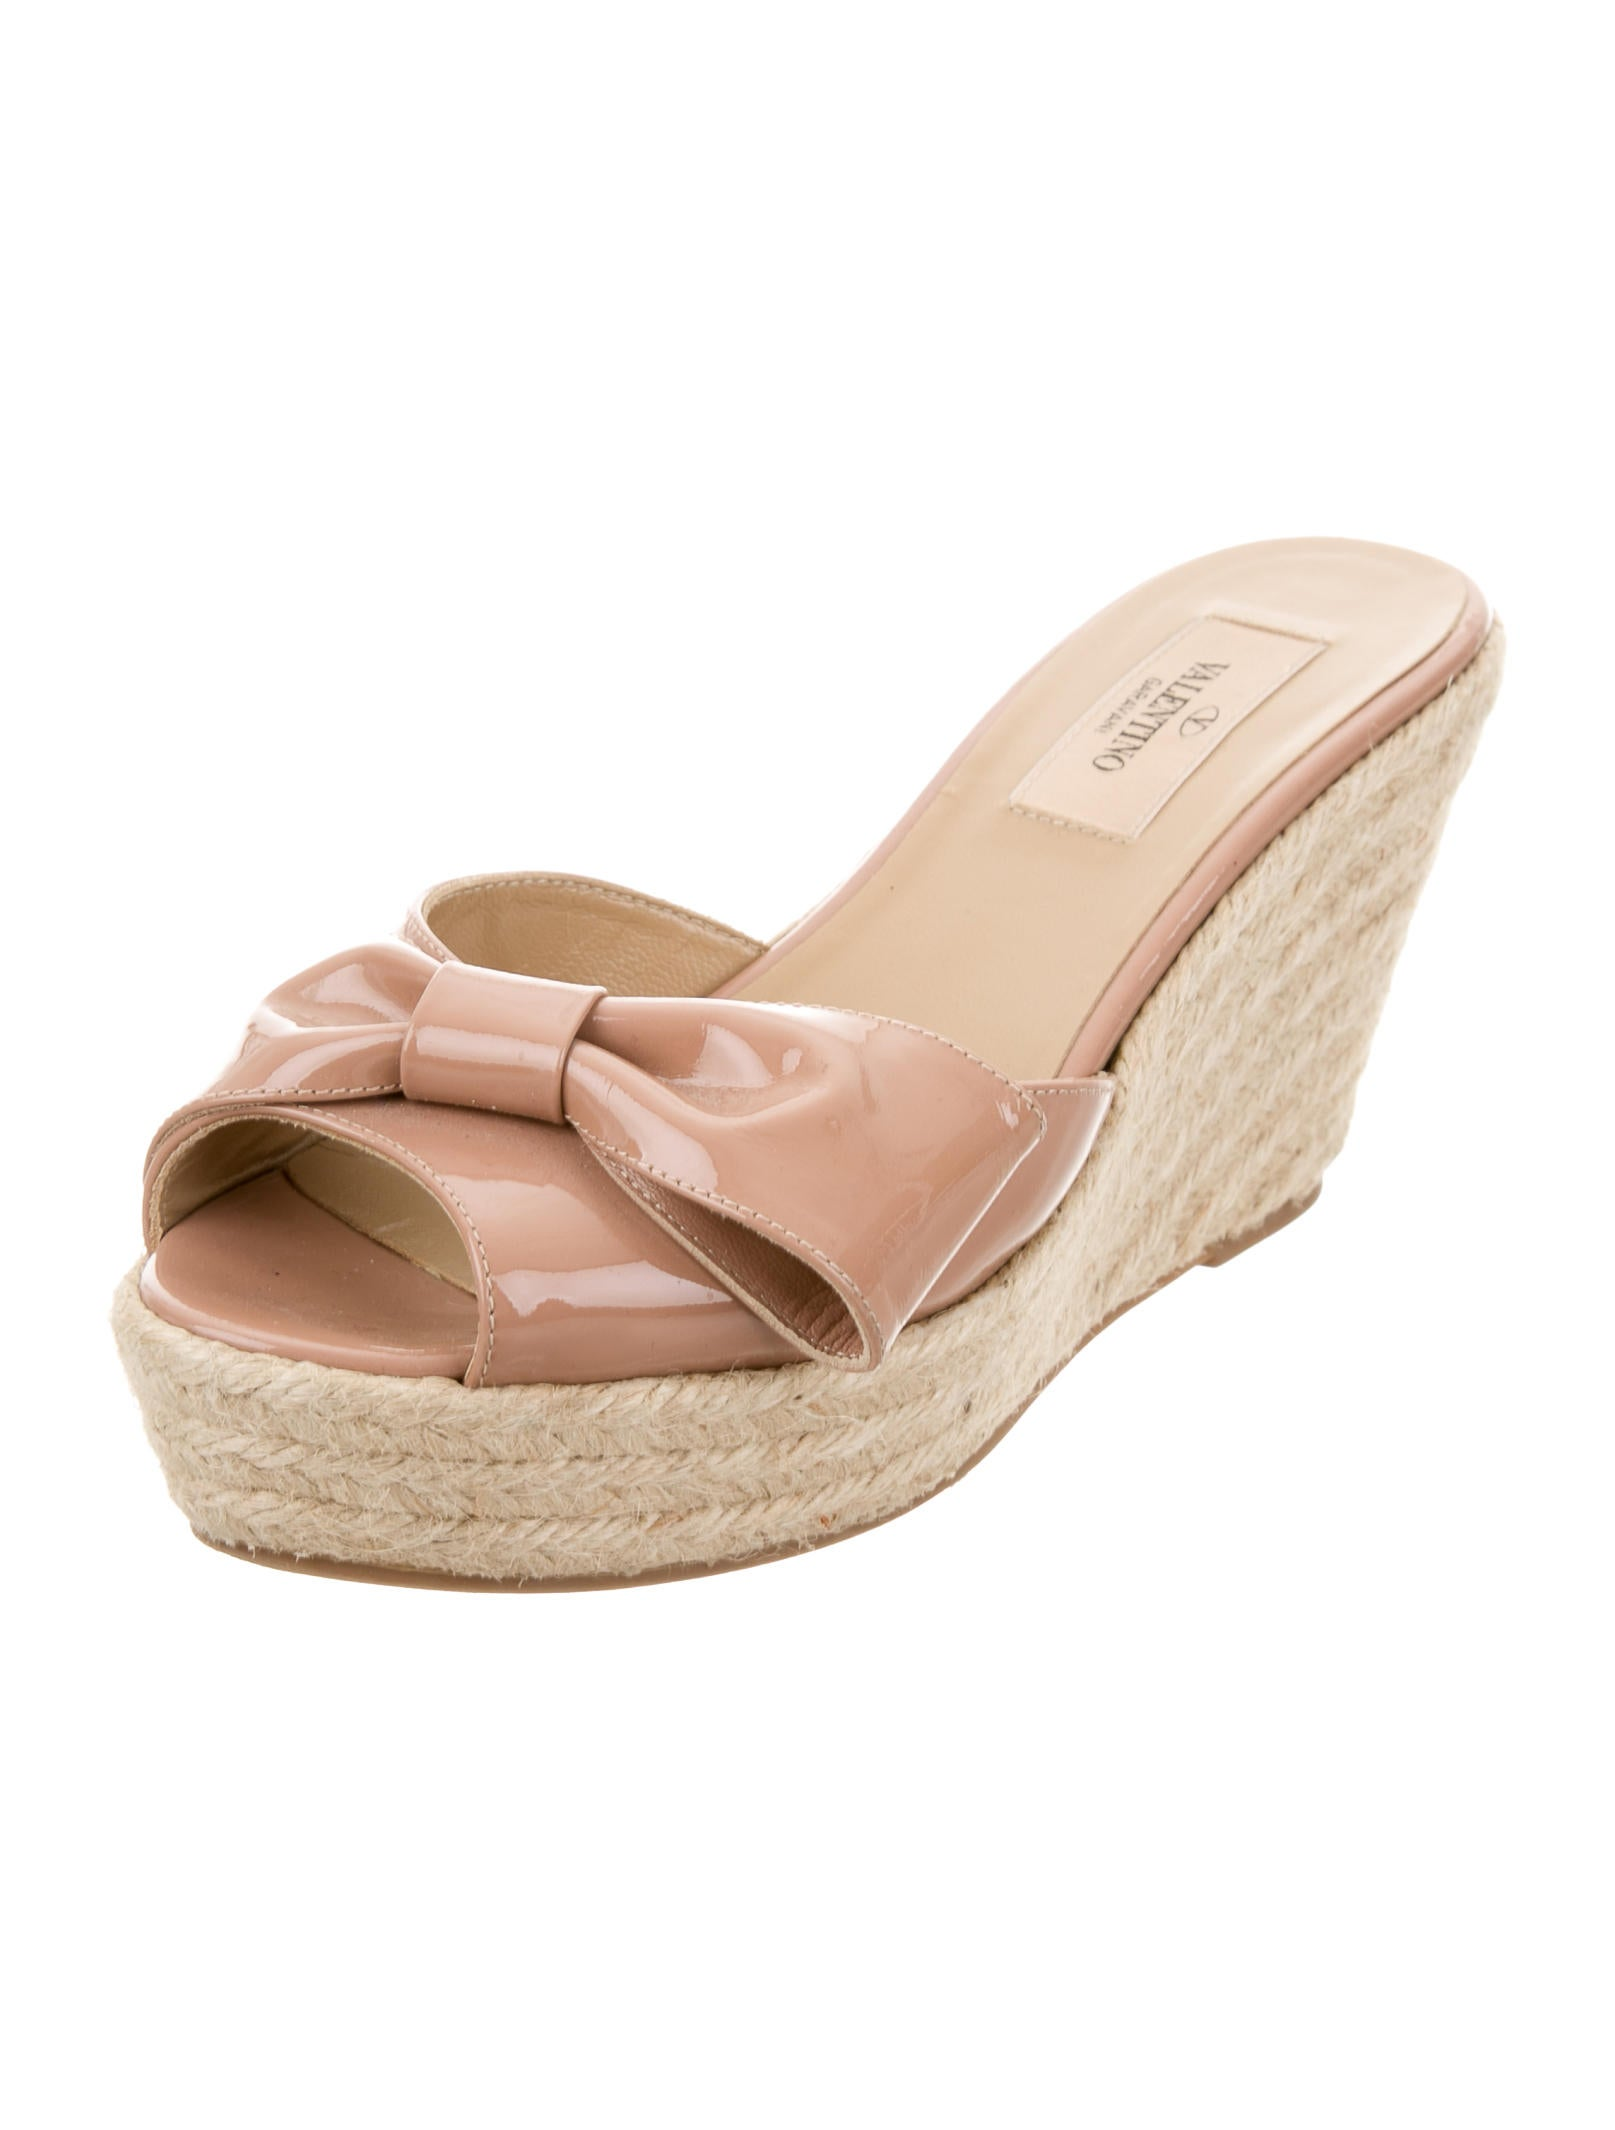 valentino bow espadrille wedge sandals shoes val58008